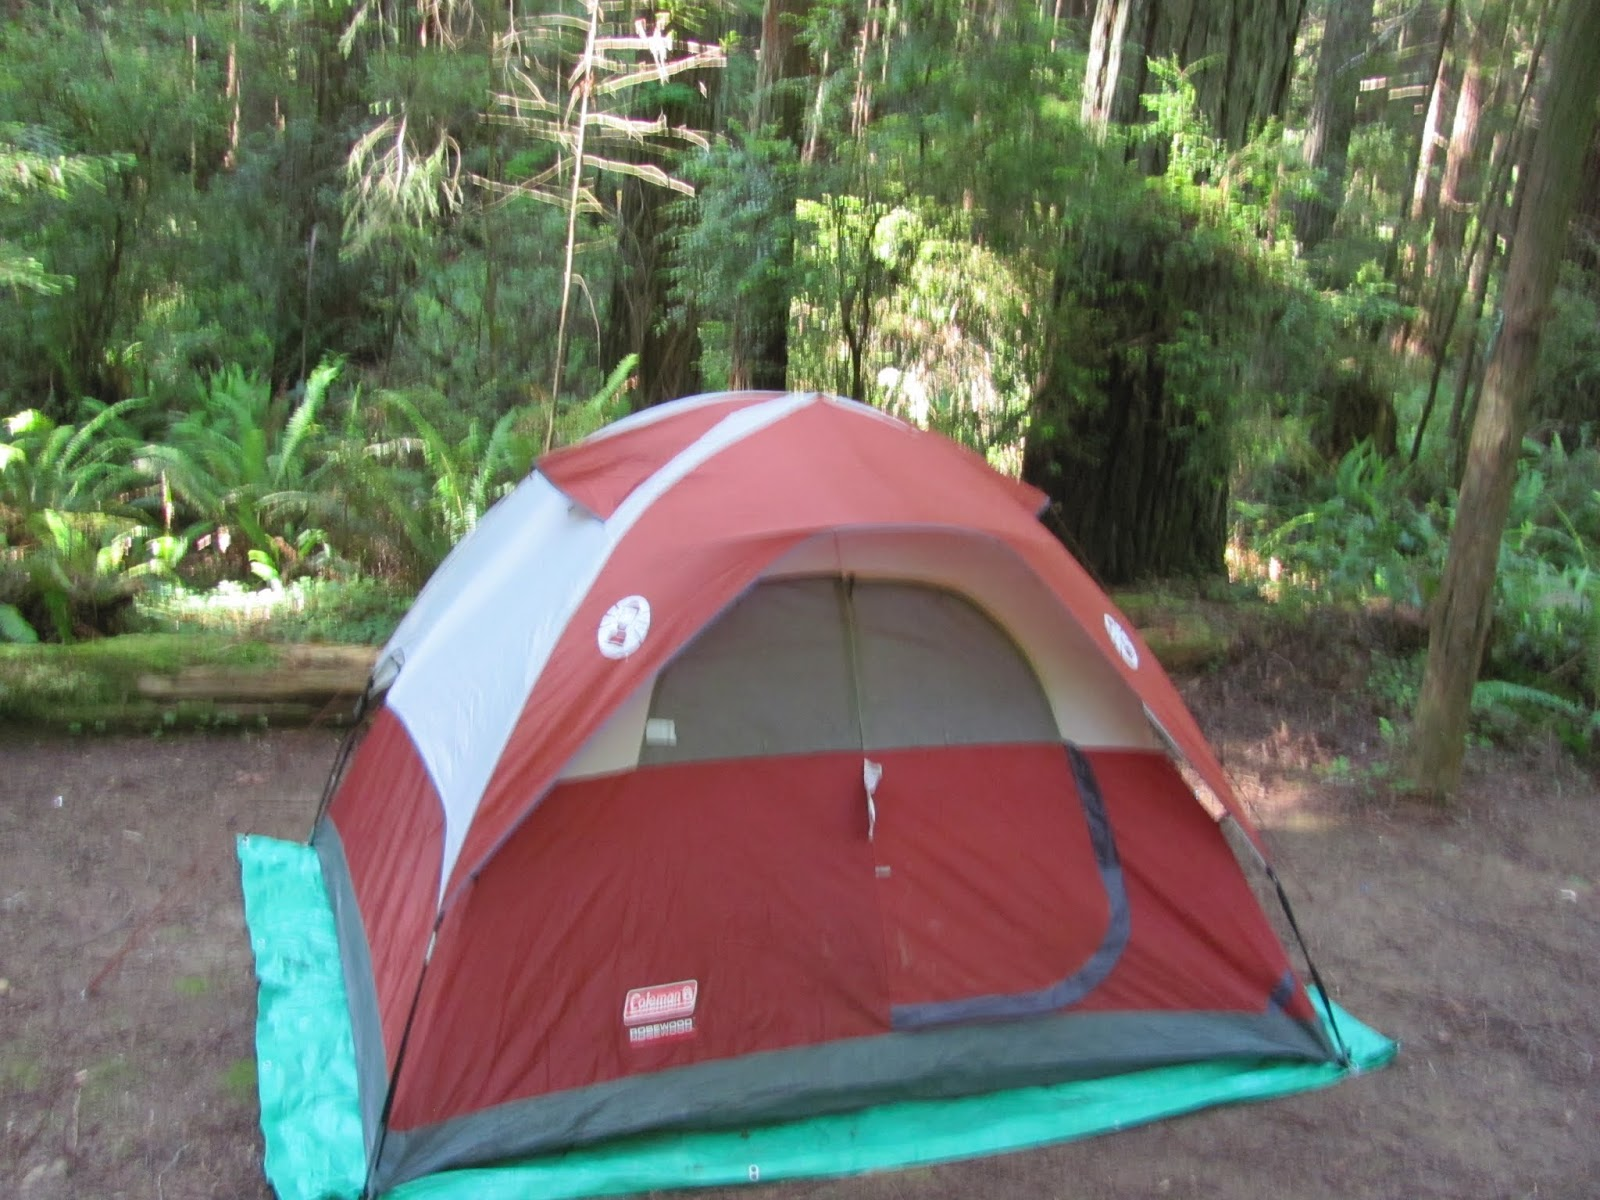 Campsite is set up at Florence Keller County Park, California